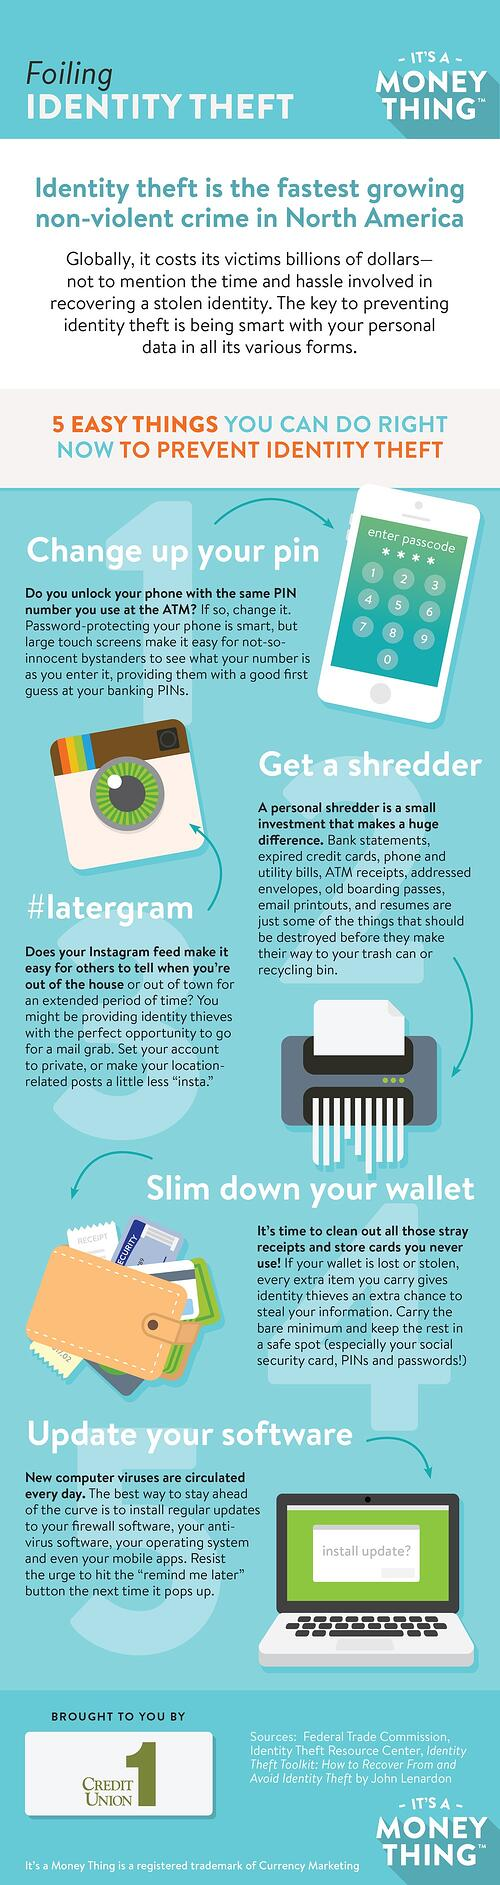 Infographic_Foiling_Identity_Theft